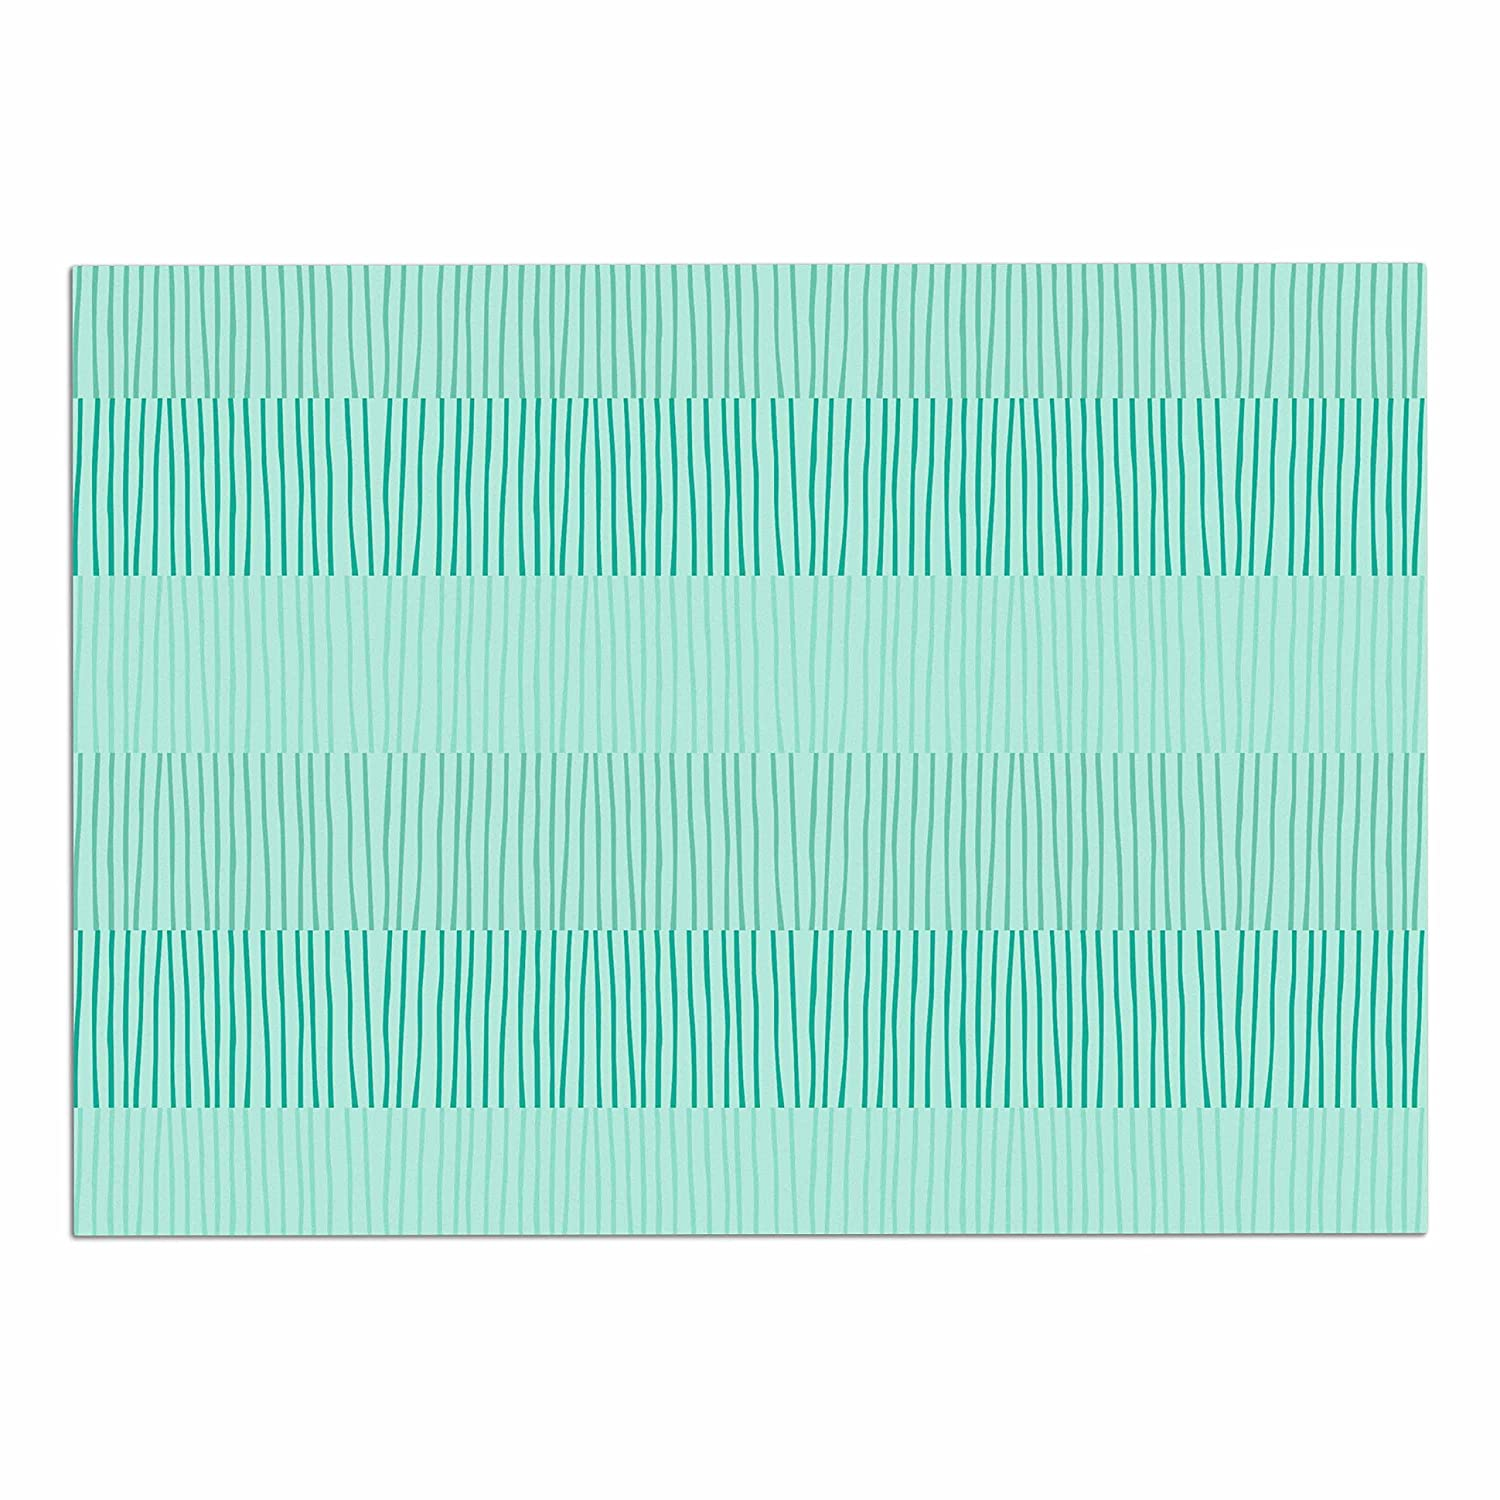 KESS InHouse Holly Helgeson Mod Grass  Teal Lines Dog Place Mat, 13  x 18